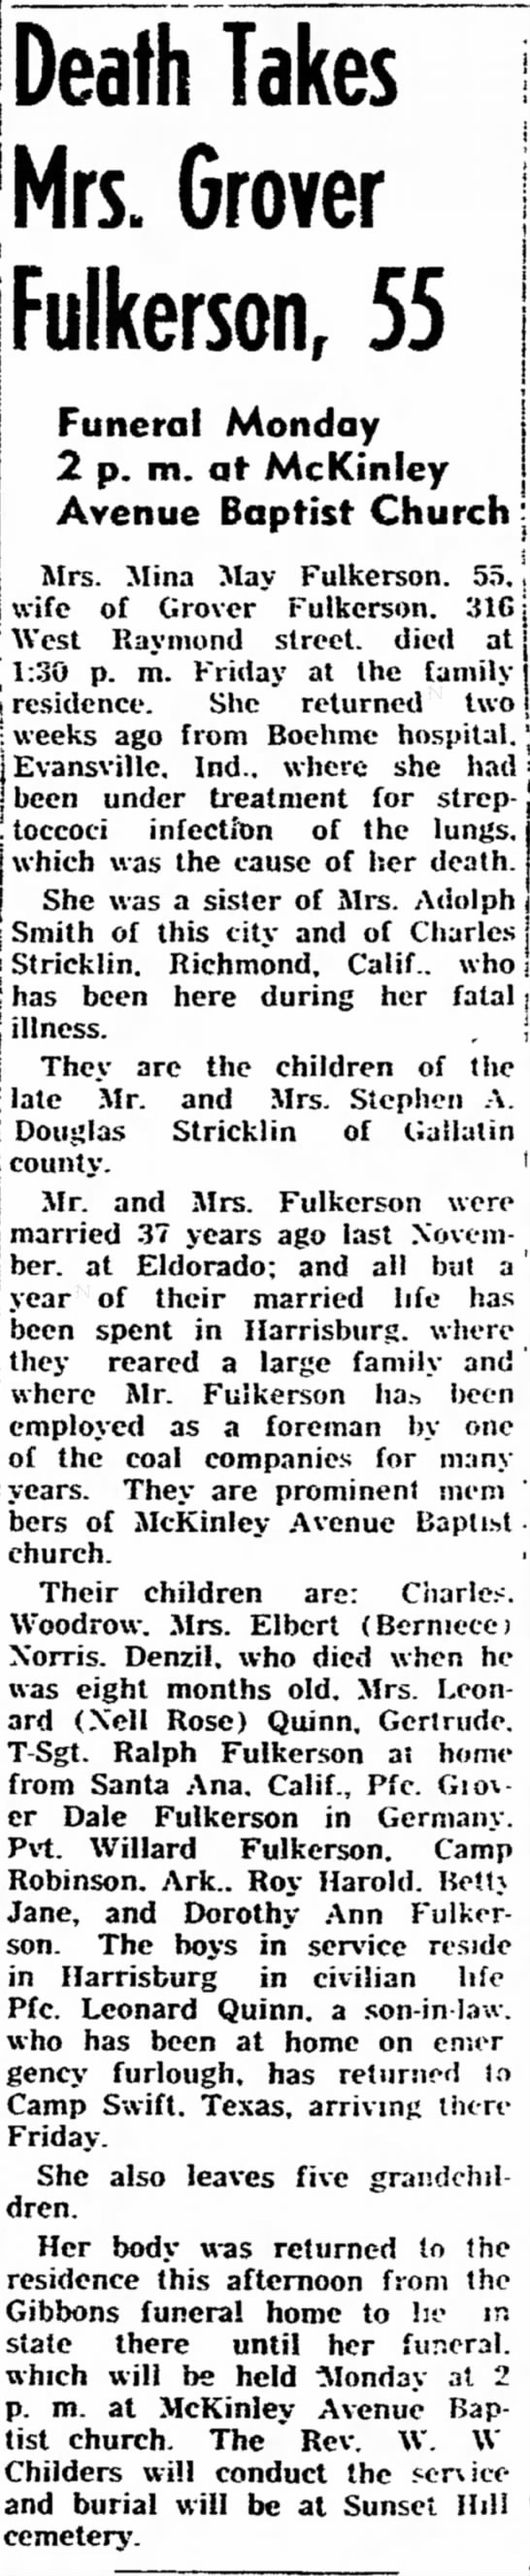 Mrs. Mina May Fulkerson (Stricklin) dies at age 55 - interviews f ' ] j Death Takes Mrs. Grover i...